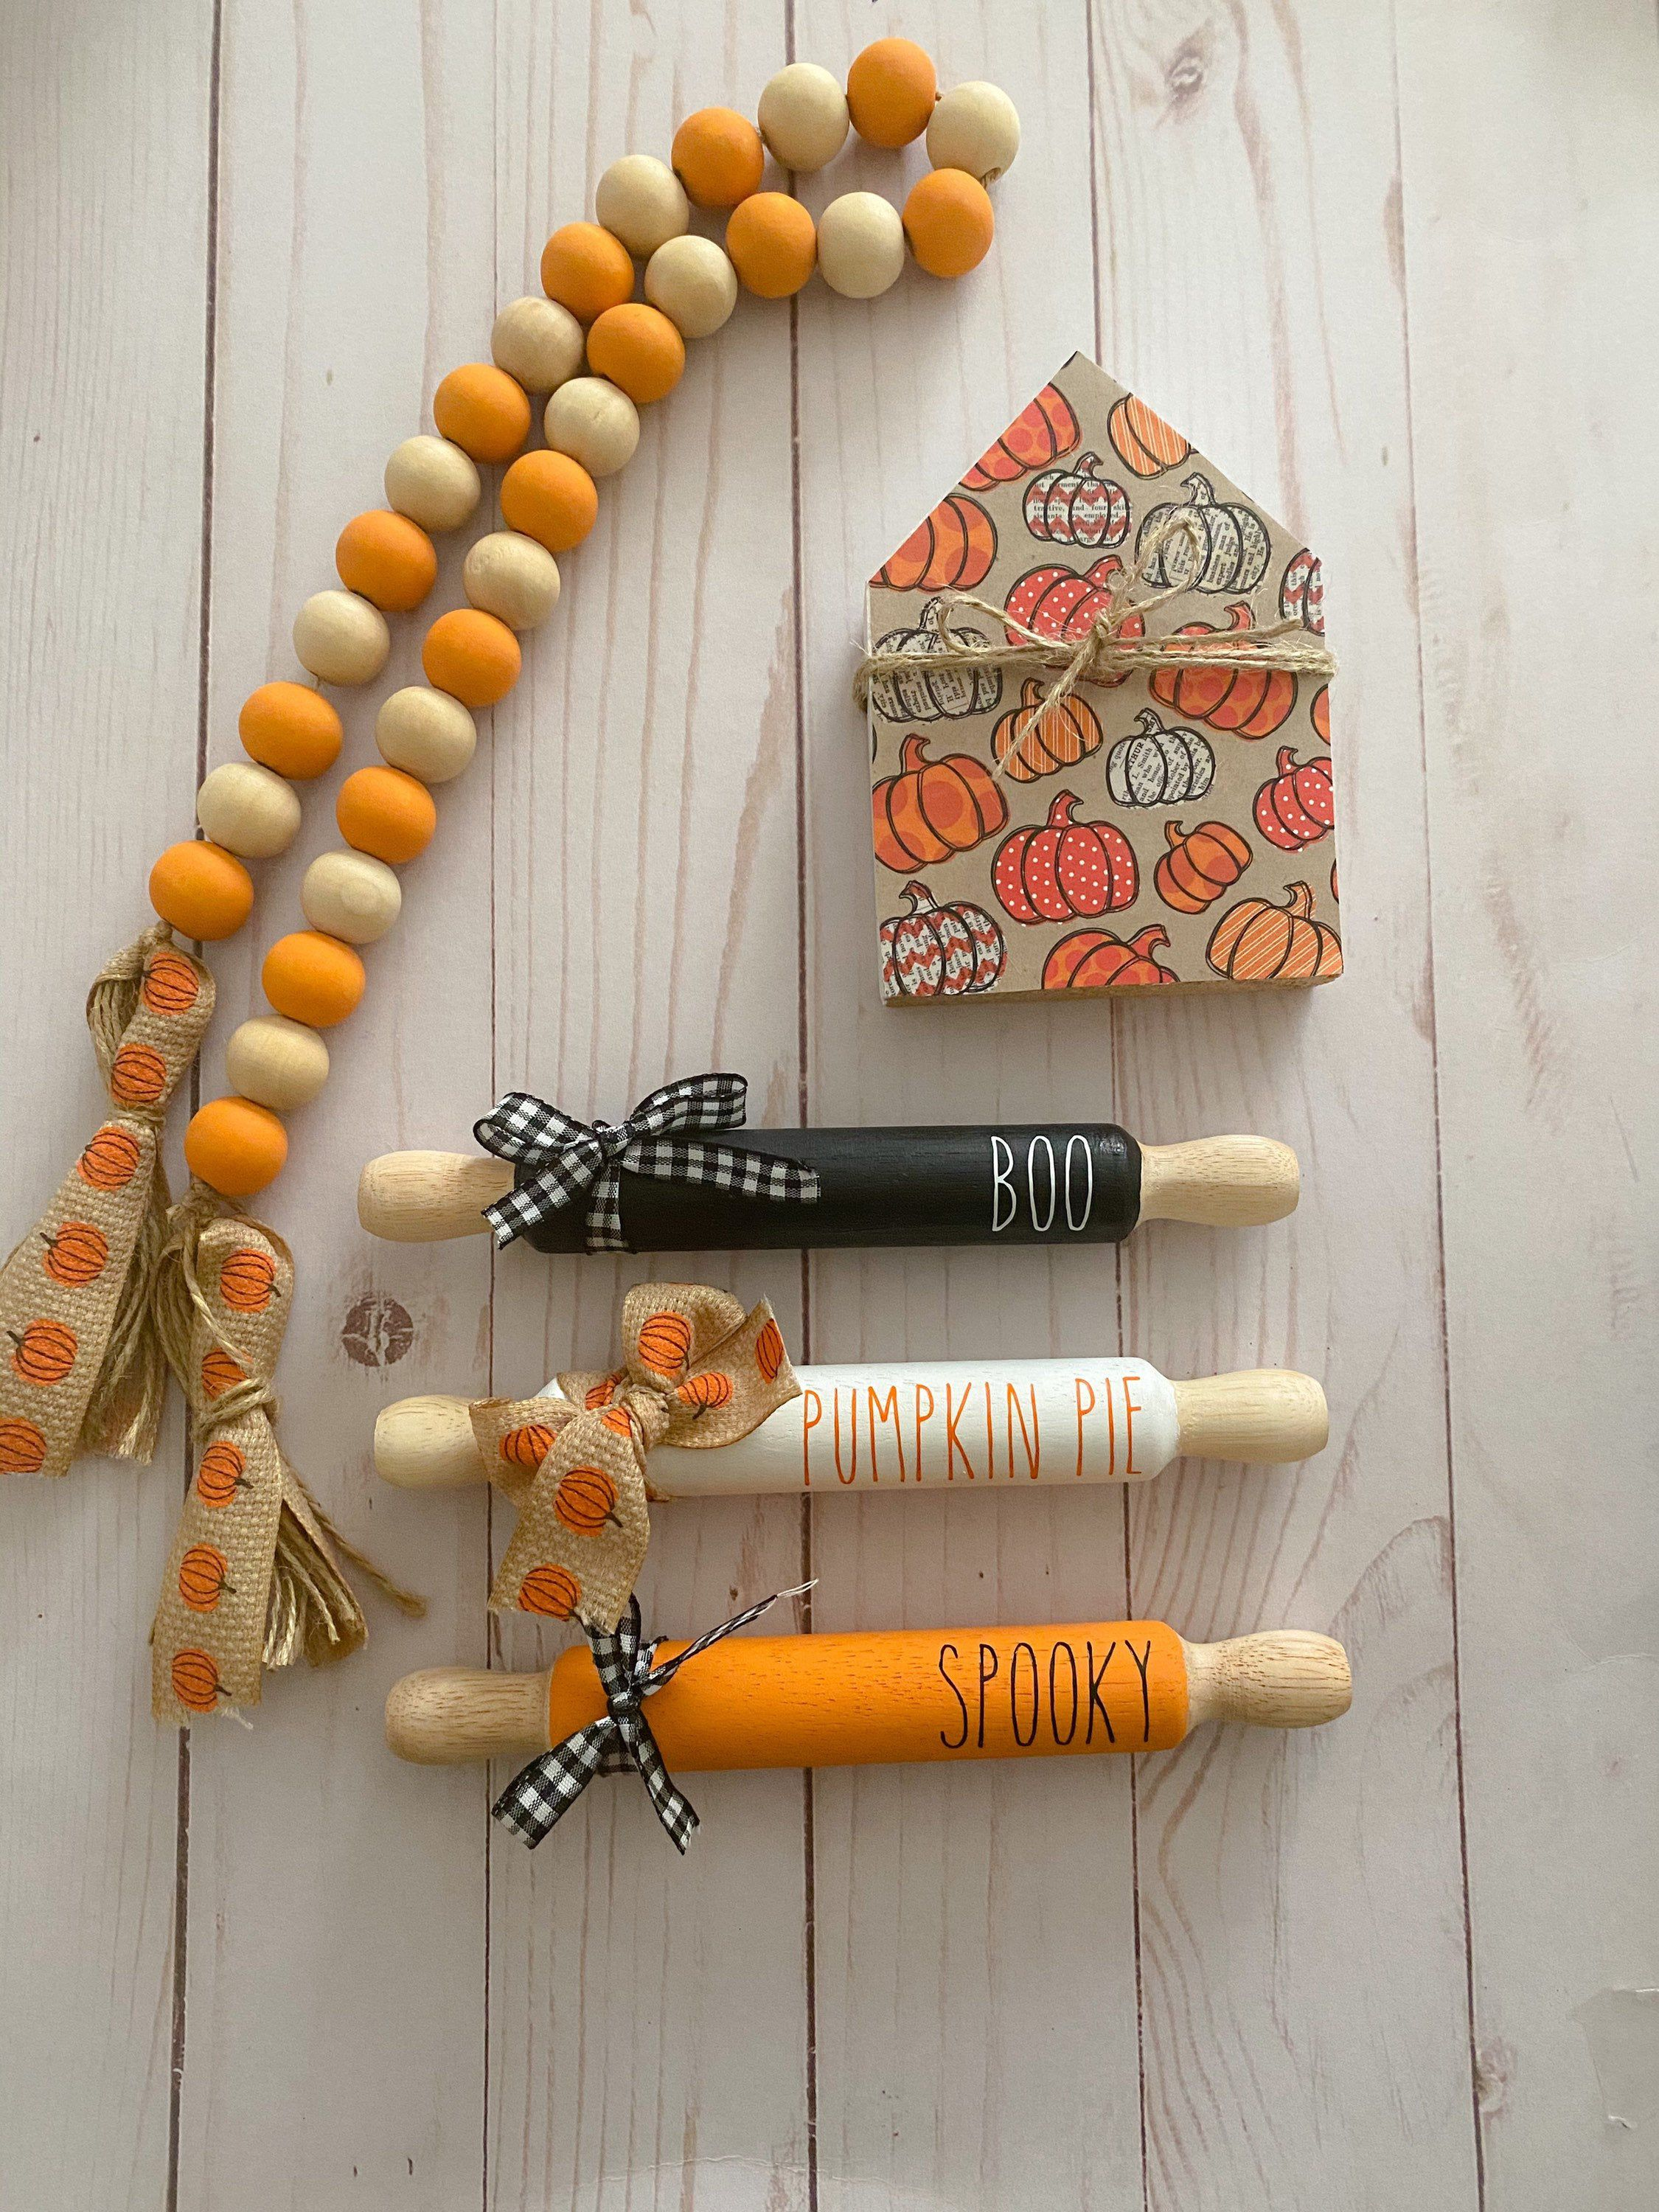 Halloween Fairs In Garland Area 2020 Pin by Laci Rios on DIY Projects in 2020 | Wood beads diy, Rolling